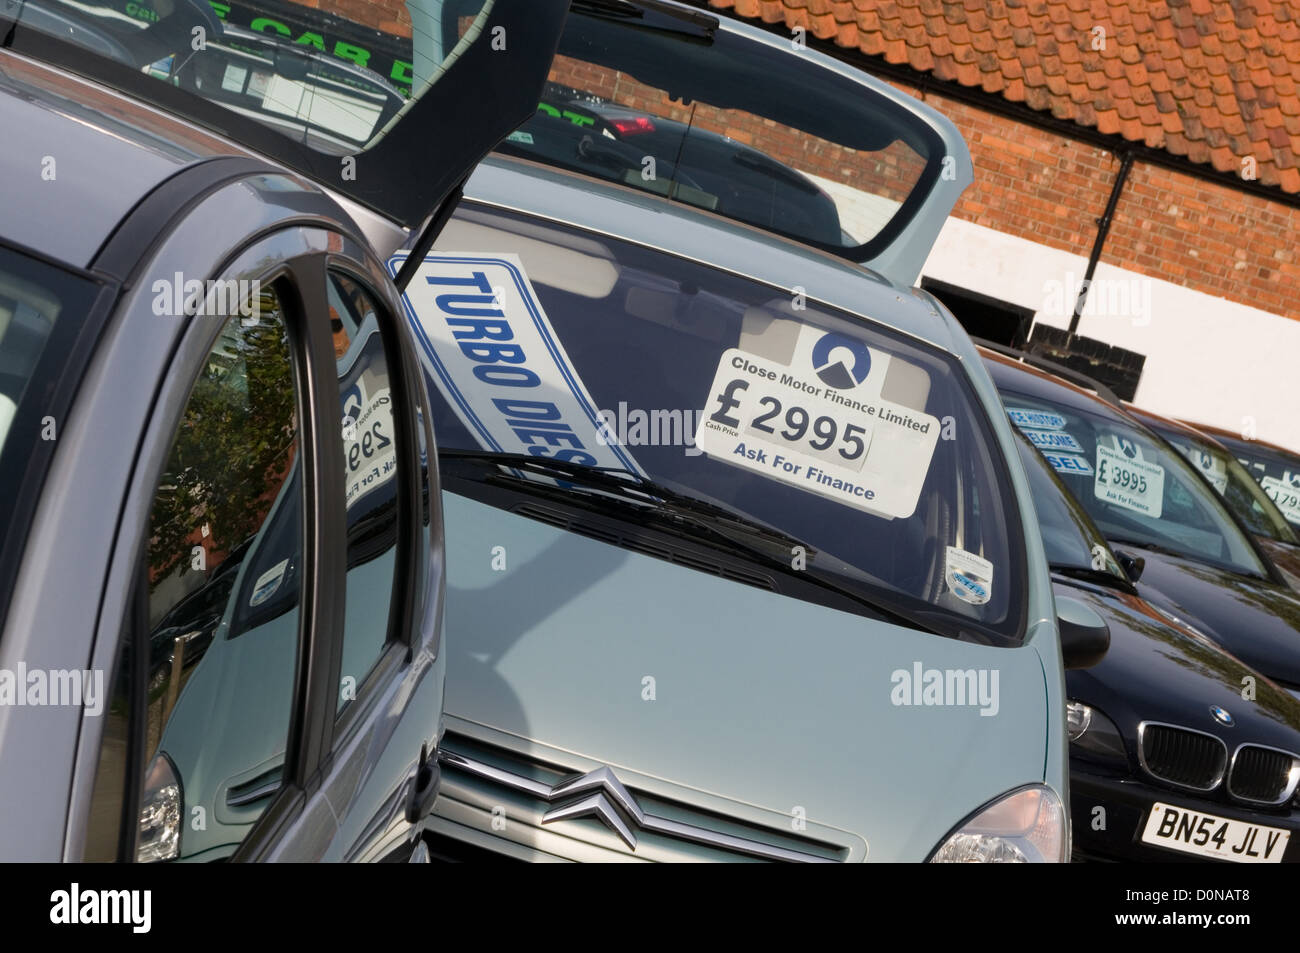 Cars For Sale Stock Photos & Cars For Sale Stock Images - Alamy